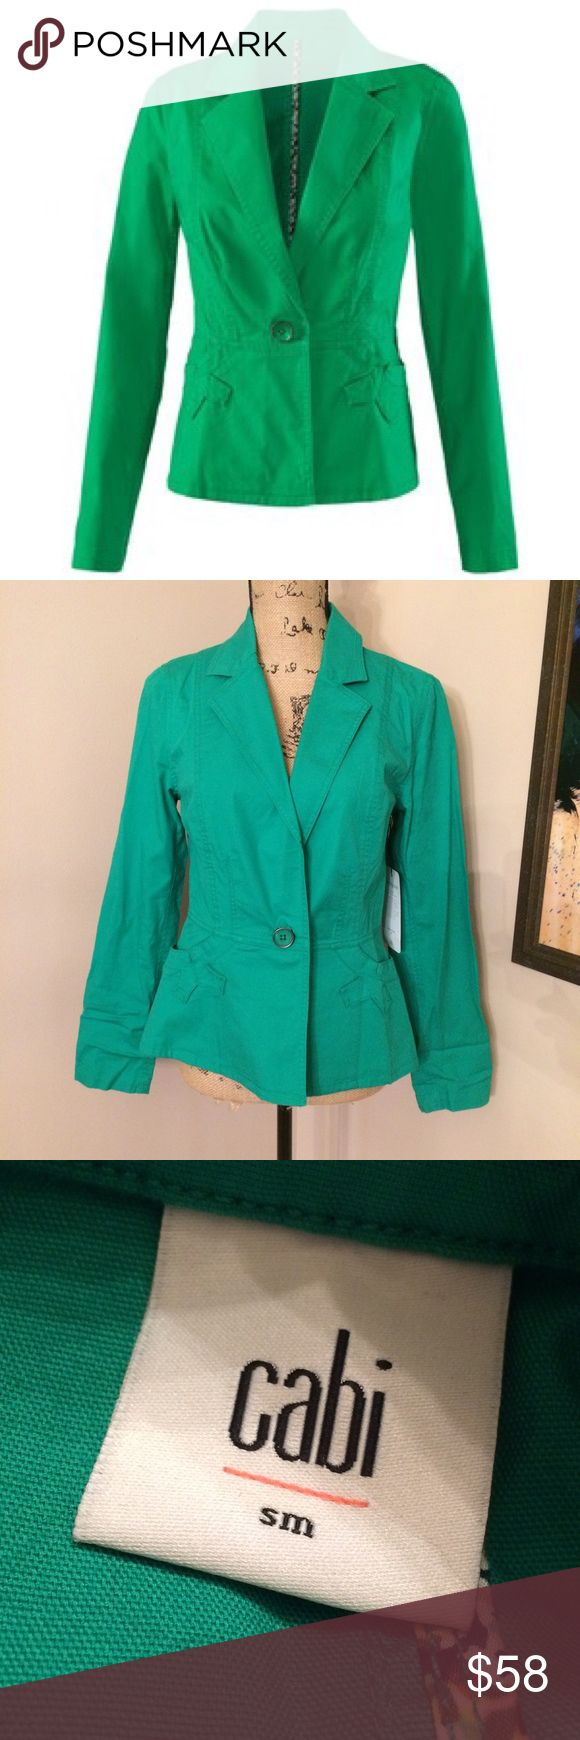 ⚡️1 day sale⚡️Cabi Verde Jacket NWT, sample. Spring 2016. Need a good steaming. 97% cotton, 3% spandex. Machine wash gentle cold and tumble dry low. 🚫No offers. 💰I offer a 10% bundle discount on 3 or more items. CAbi Jackets & Coats Blazers